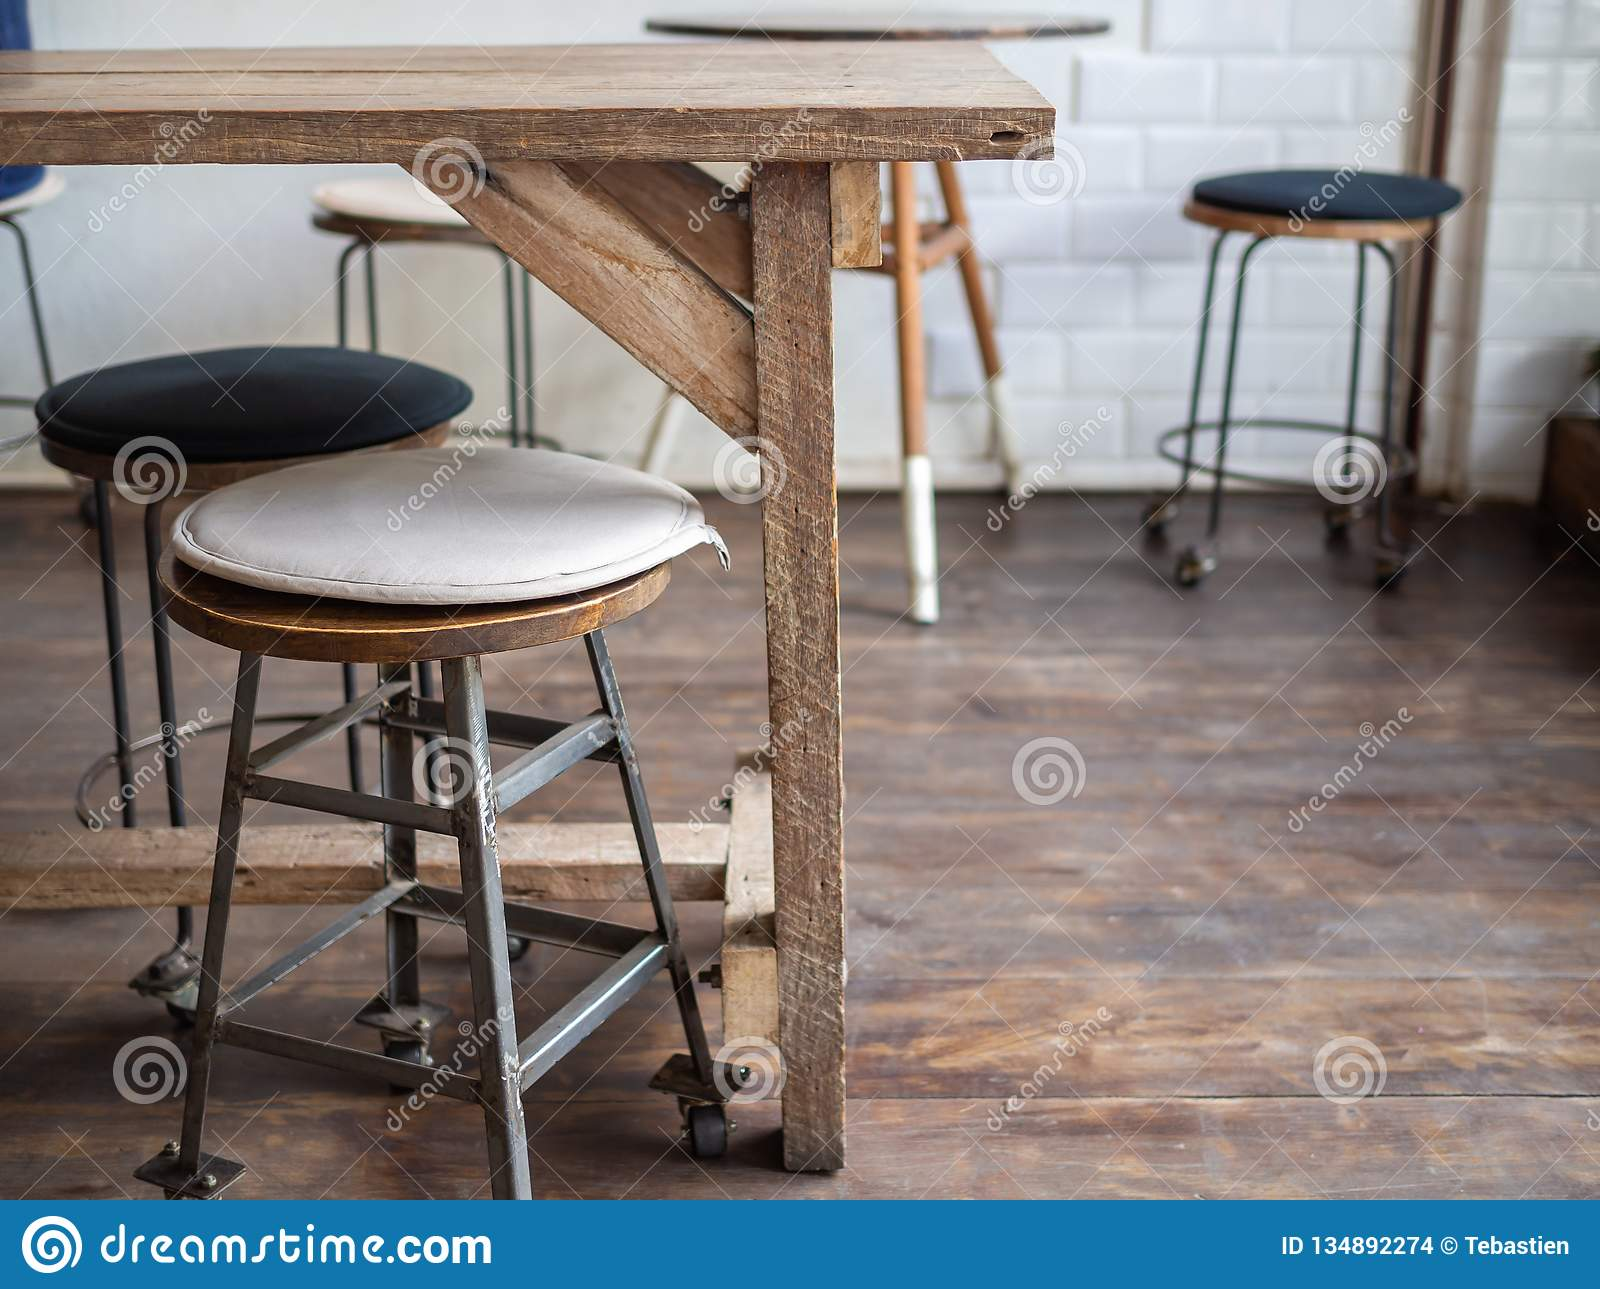 Old Wooden Bar Stools On Wooden Floor In Cafe Retro Style Stock Photo Image Of Decor Decoration 134892274